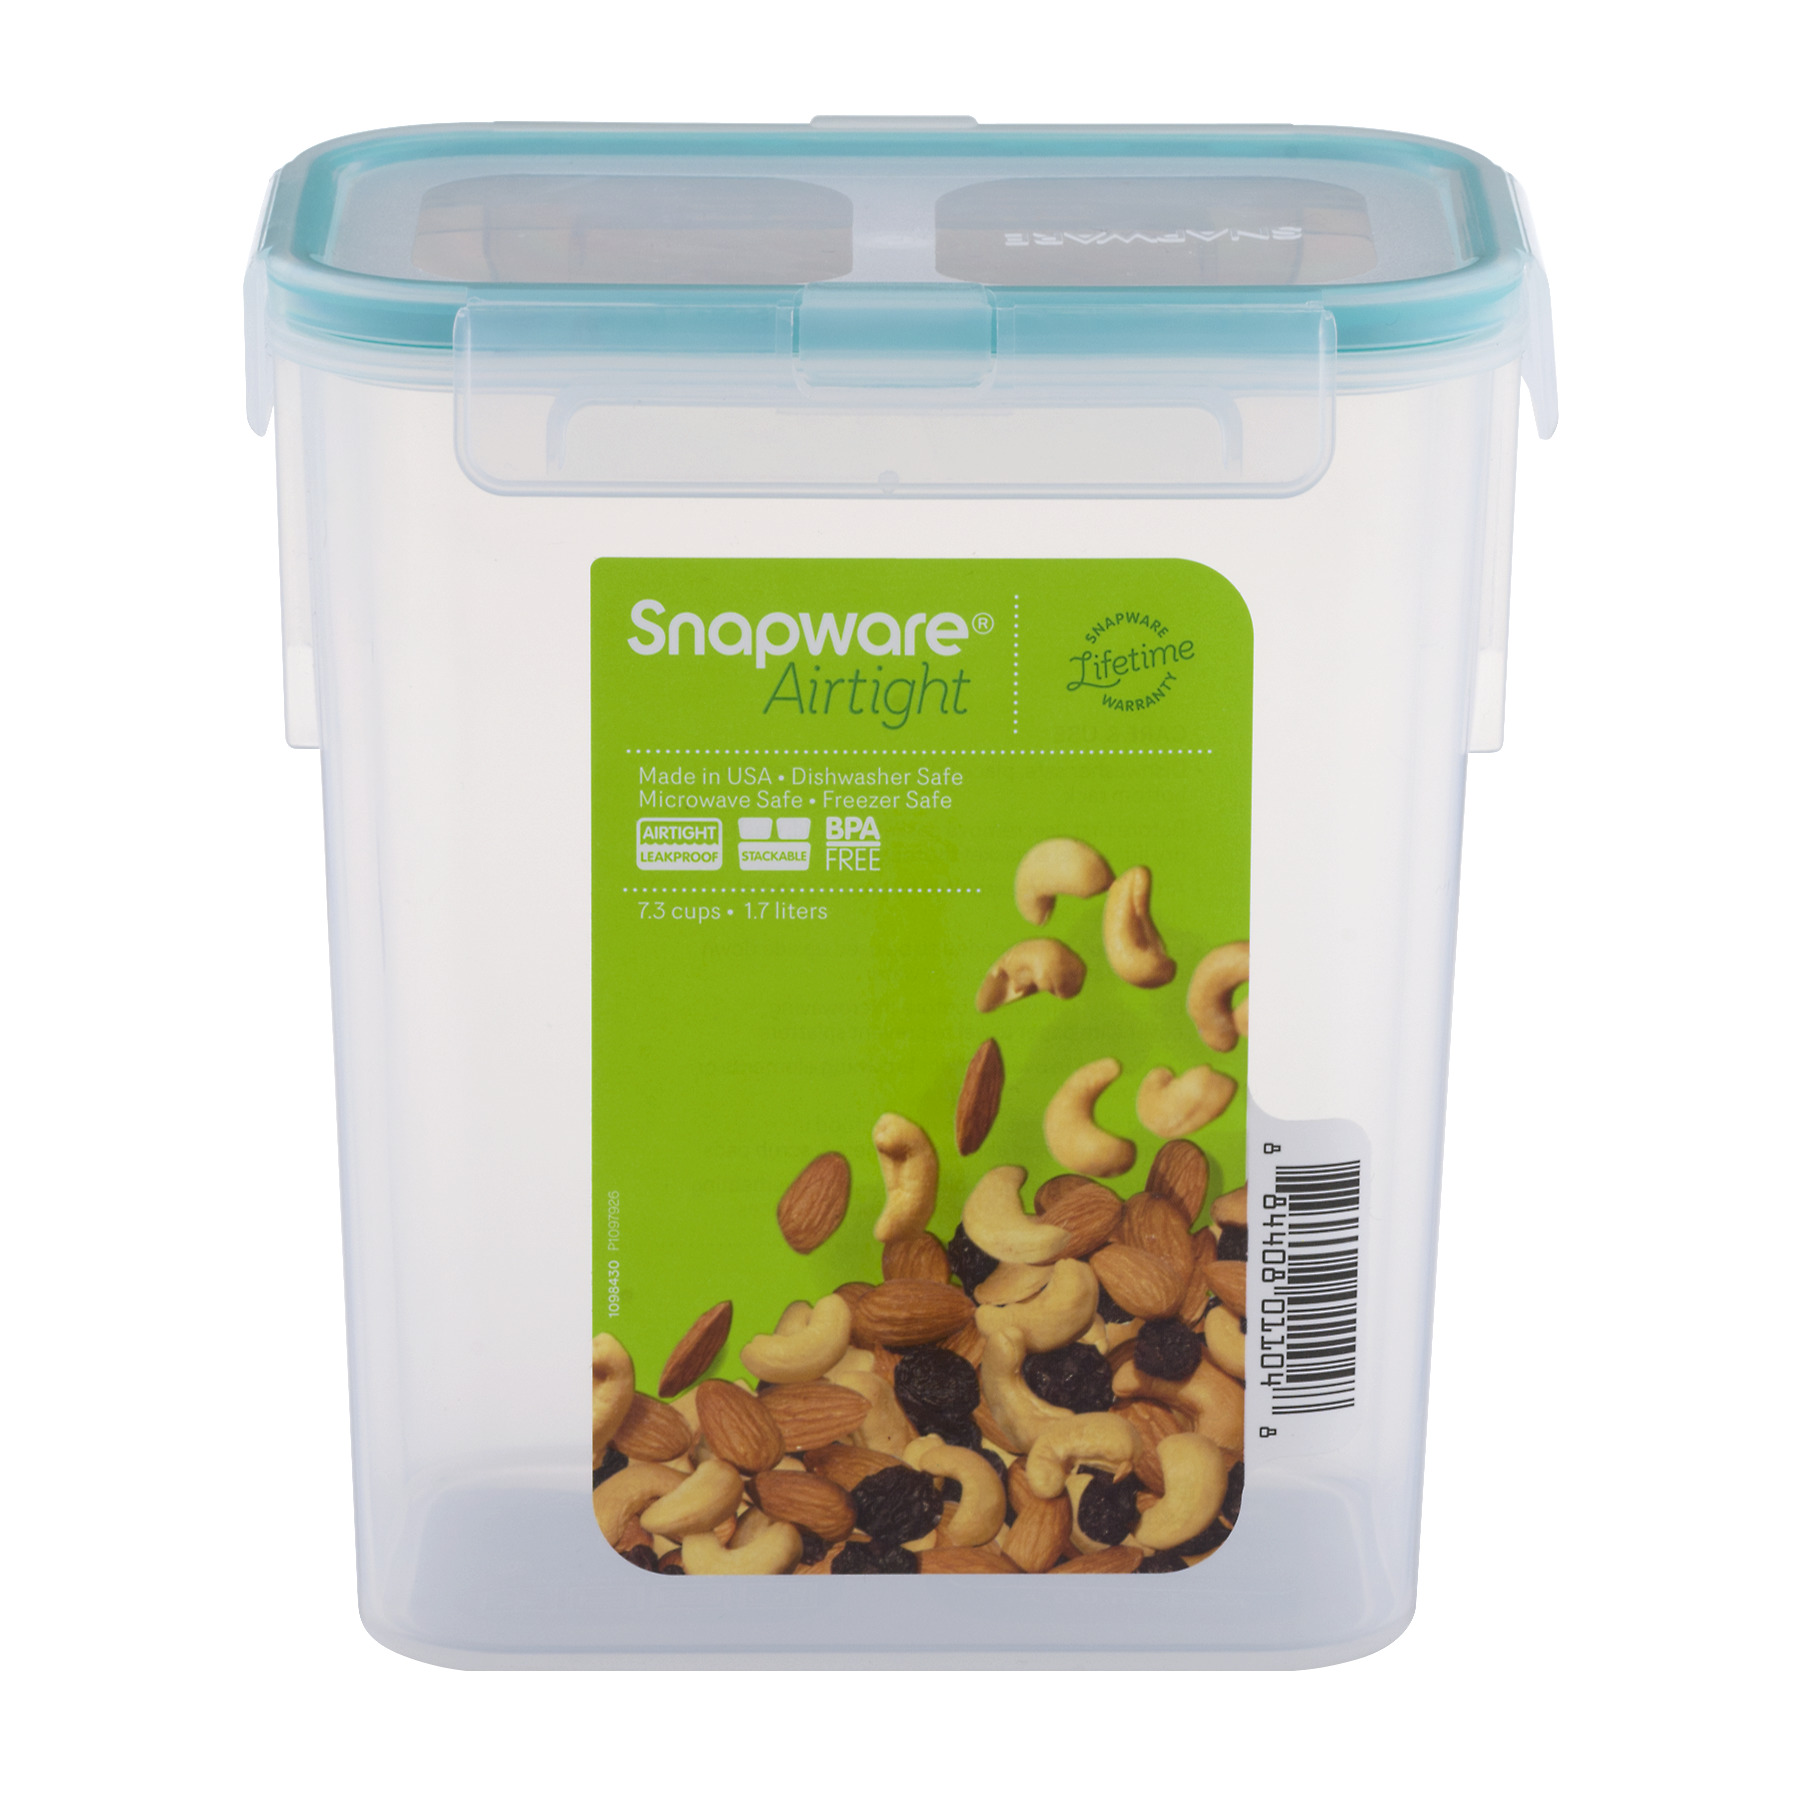 Snapware 7.3 Cups Airtight Food Storage Container 1 container  sc 1 st  Walmart & Snapware 7.3 Cups Airtight Food Storage Container 1 container ...